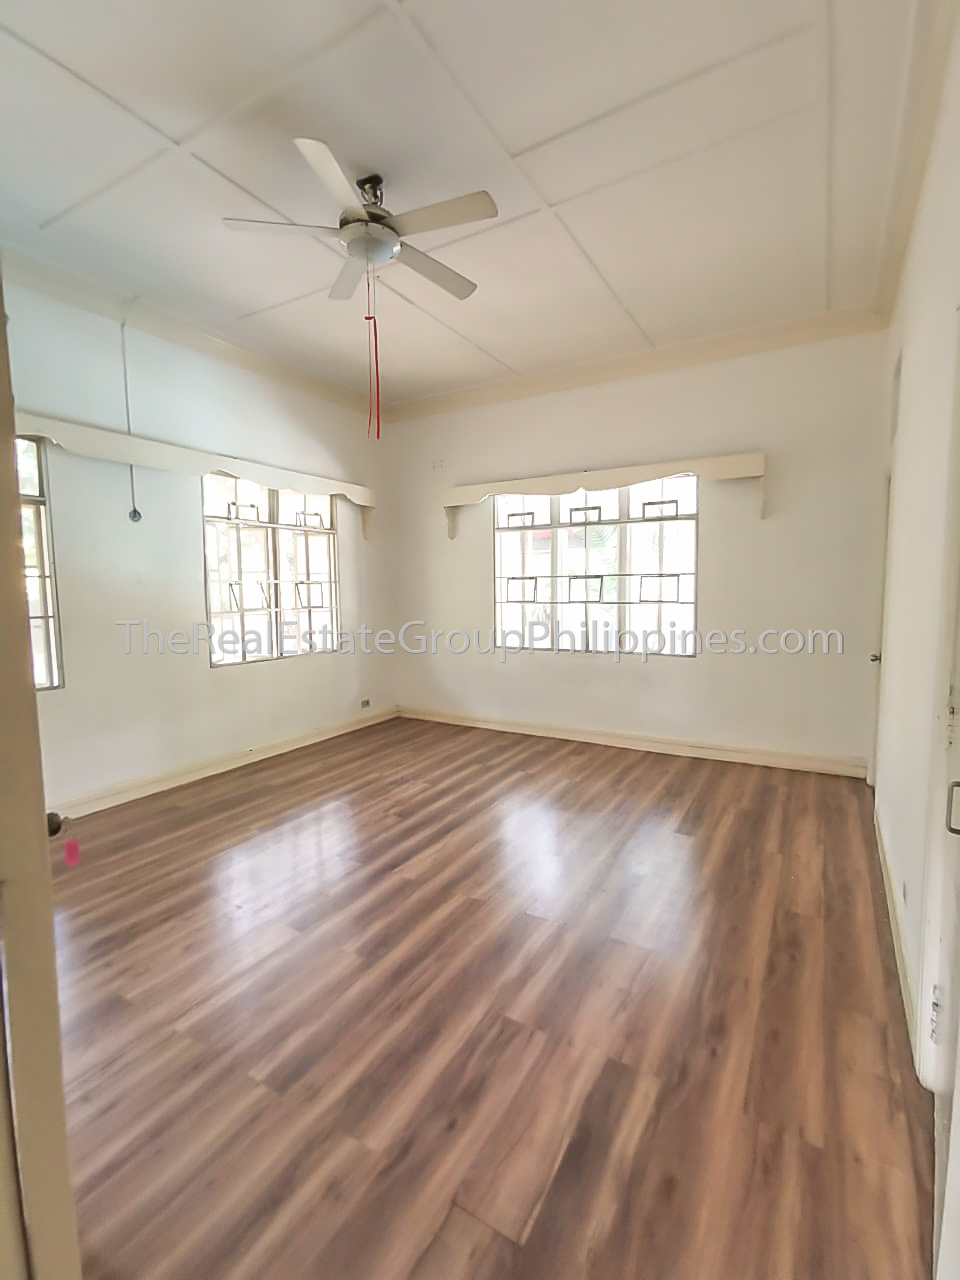 5BR House For Sale, Forbes Park Village, Makati-18